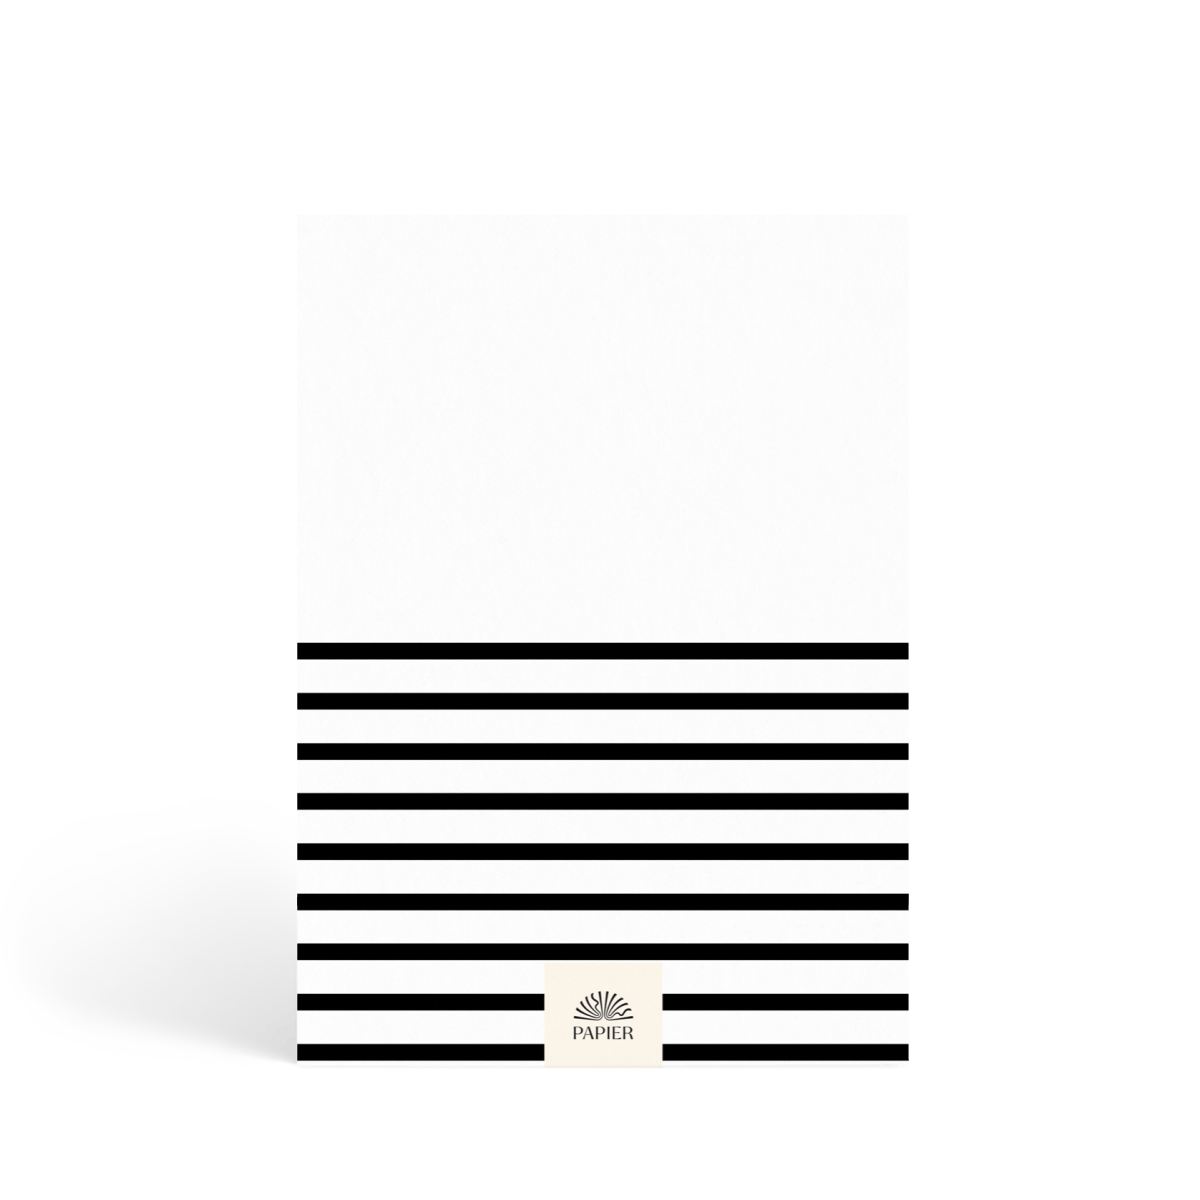 Https%3a%2f%2fwww.papier.com%2fproduct image%2f47998%2f5%2fdemi stripe 11760 back 1539096201.png?ixlib=rb 1.1